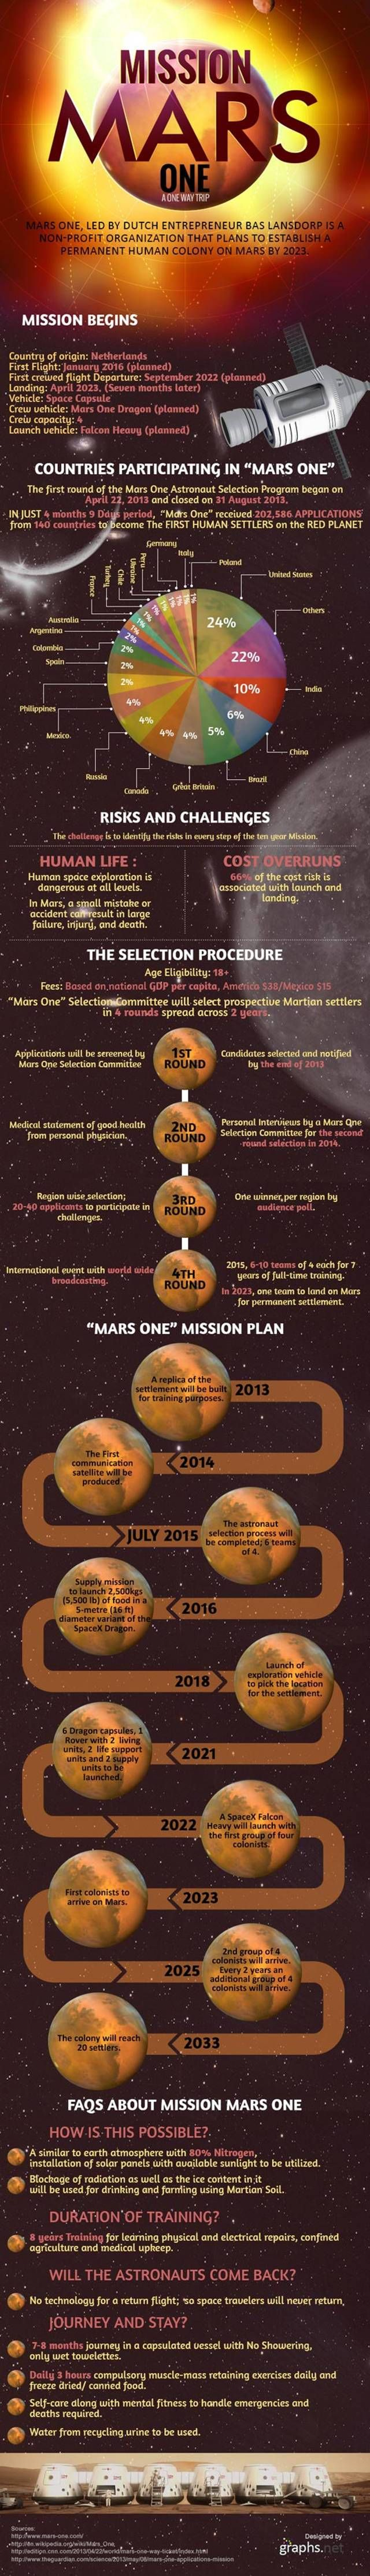 Mars One a Dutch nonprofit run, is planing to set up the first permanent installation on Mars by 2023. If you are in good condition and have no wish to return on Earth, you can apply for the one way trip. In this infographic by Graphs.net, you will have a closer look at the mission's timeline…  Mission Mars One